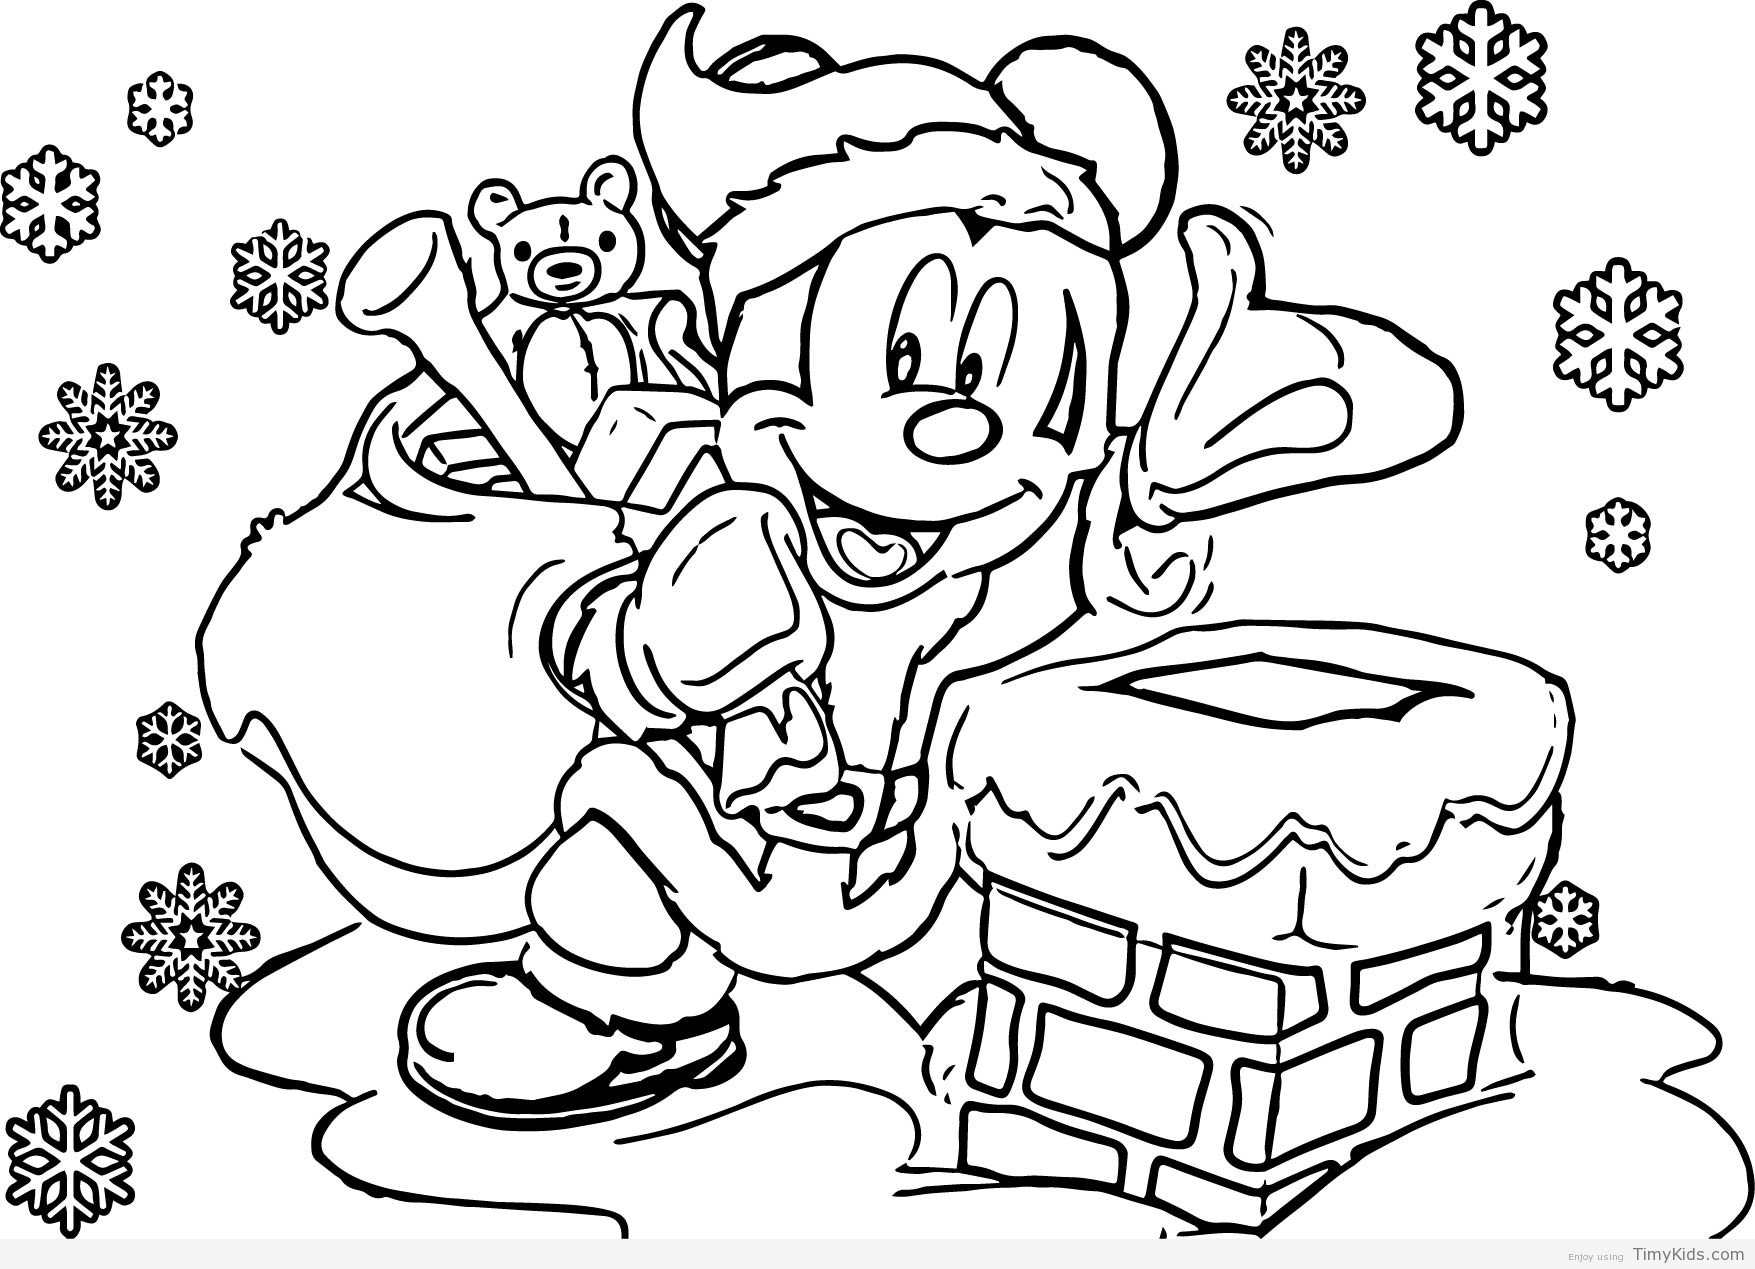 Christmas Coloring Pages For Free To Print With Medquit Xmas Fresh Printable